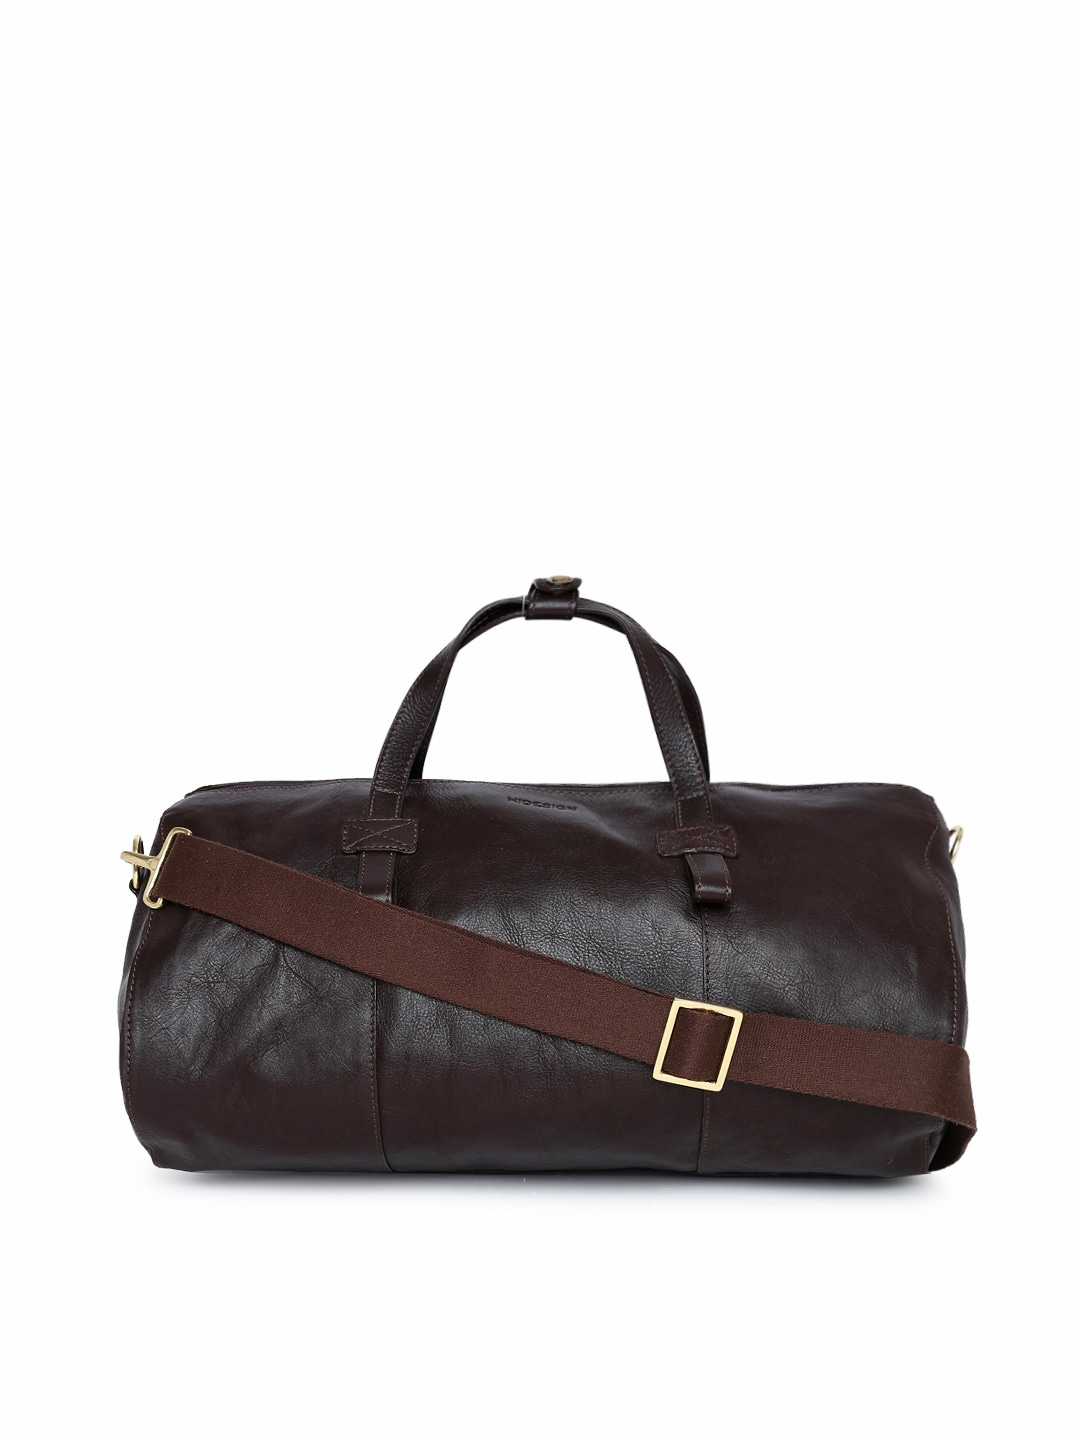 f15fc20e7937 Men s Messenger Bags - Buy Messenger Bags for Men Online in India